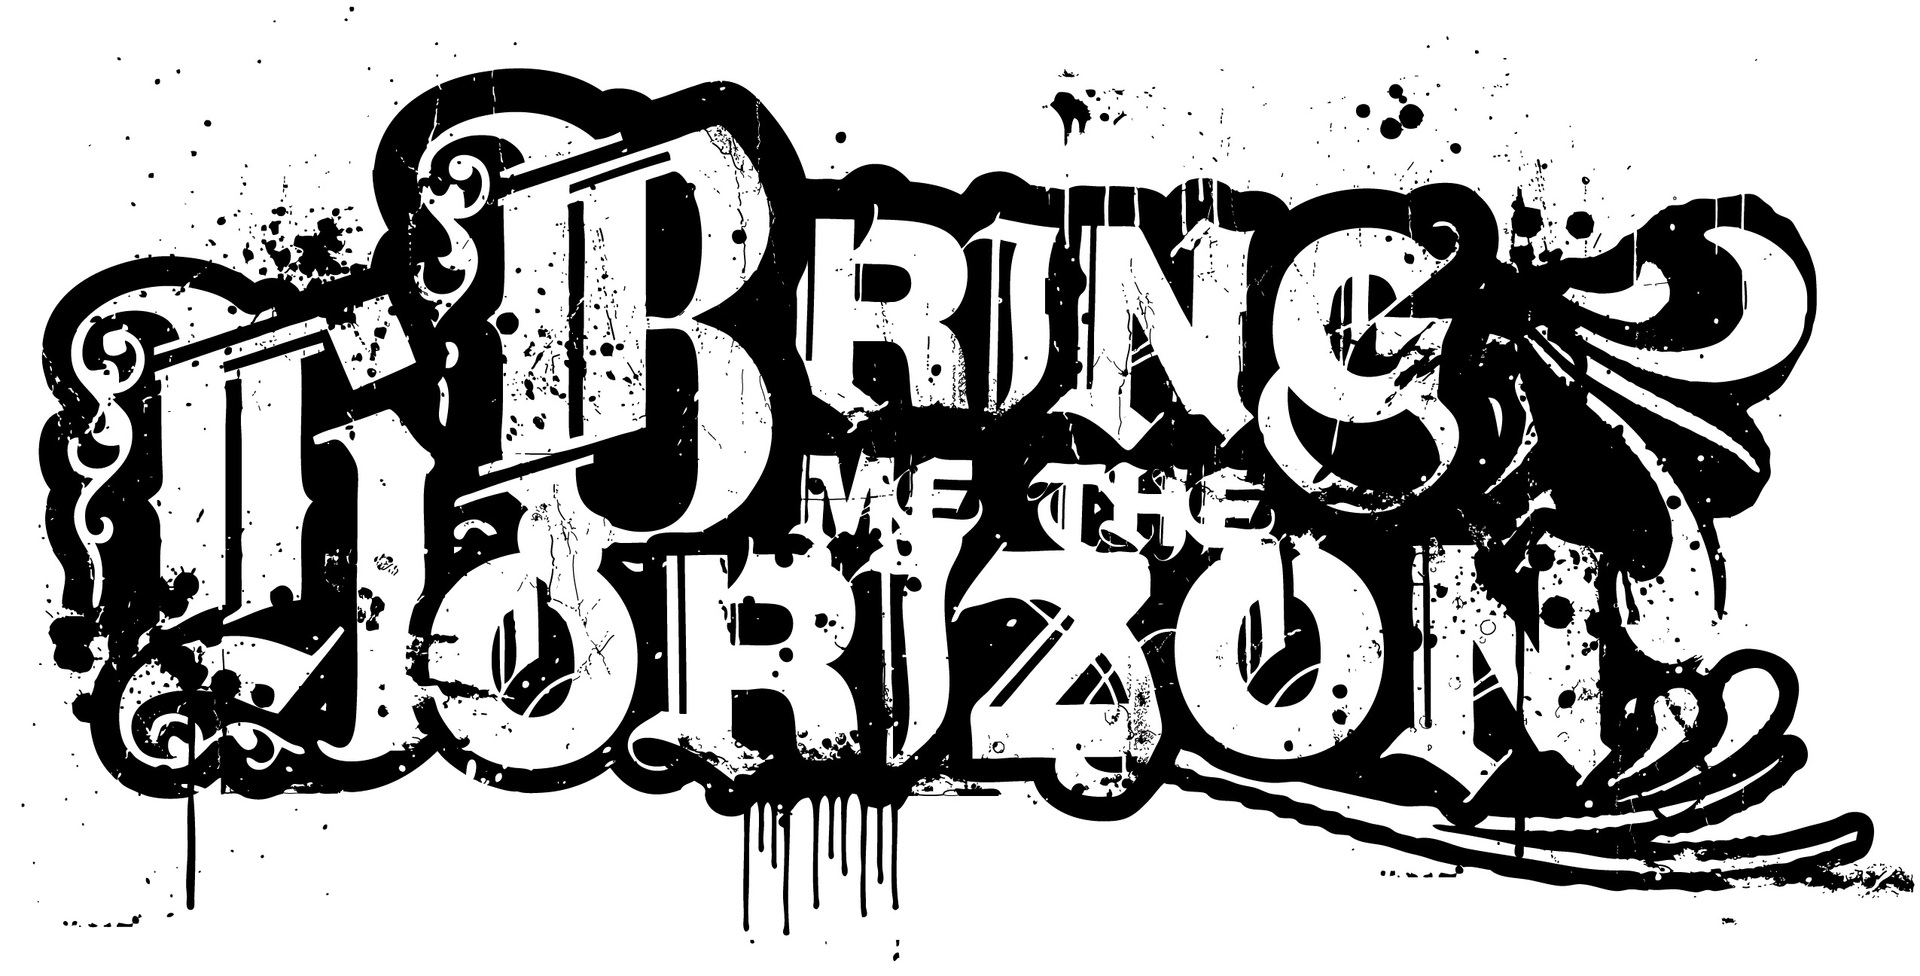 http://images.fanpop.com/images/image_uploads/BMTH-Logo-bring-me-the-horizon-714343_1920_976.jpg